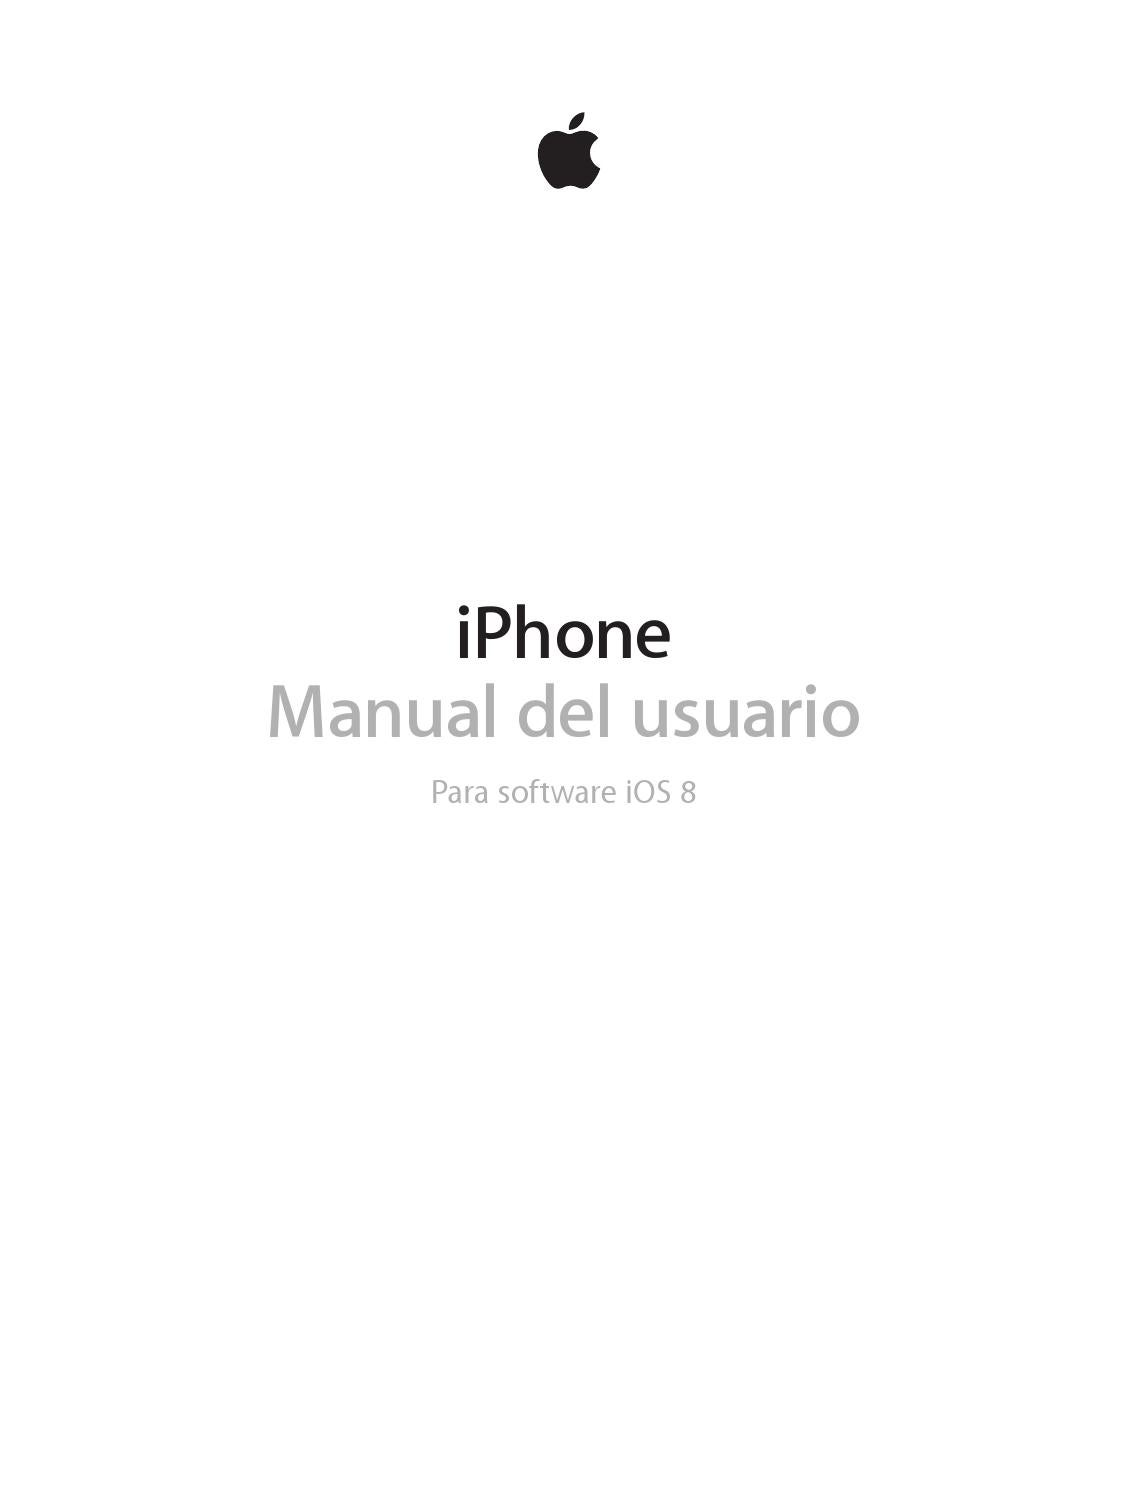 Iphone manual del usuario ios 8 by COTEL Comercial Telefónica S.L. ...